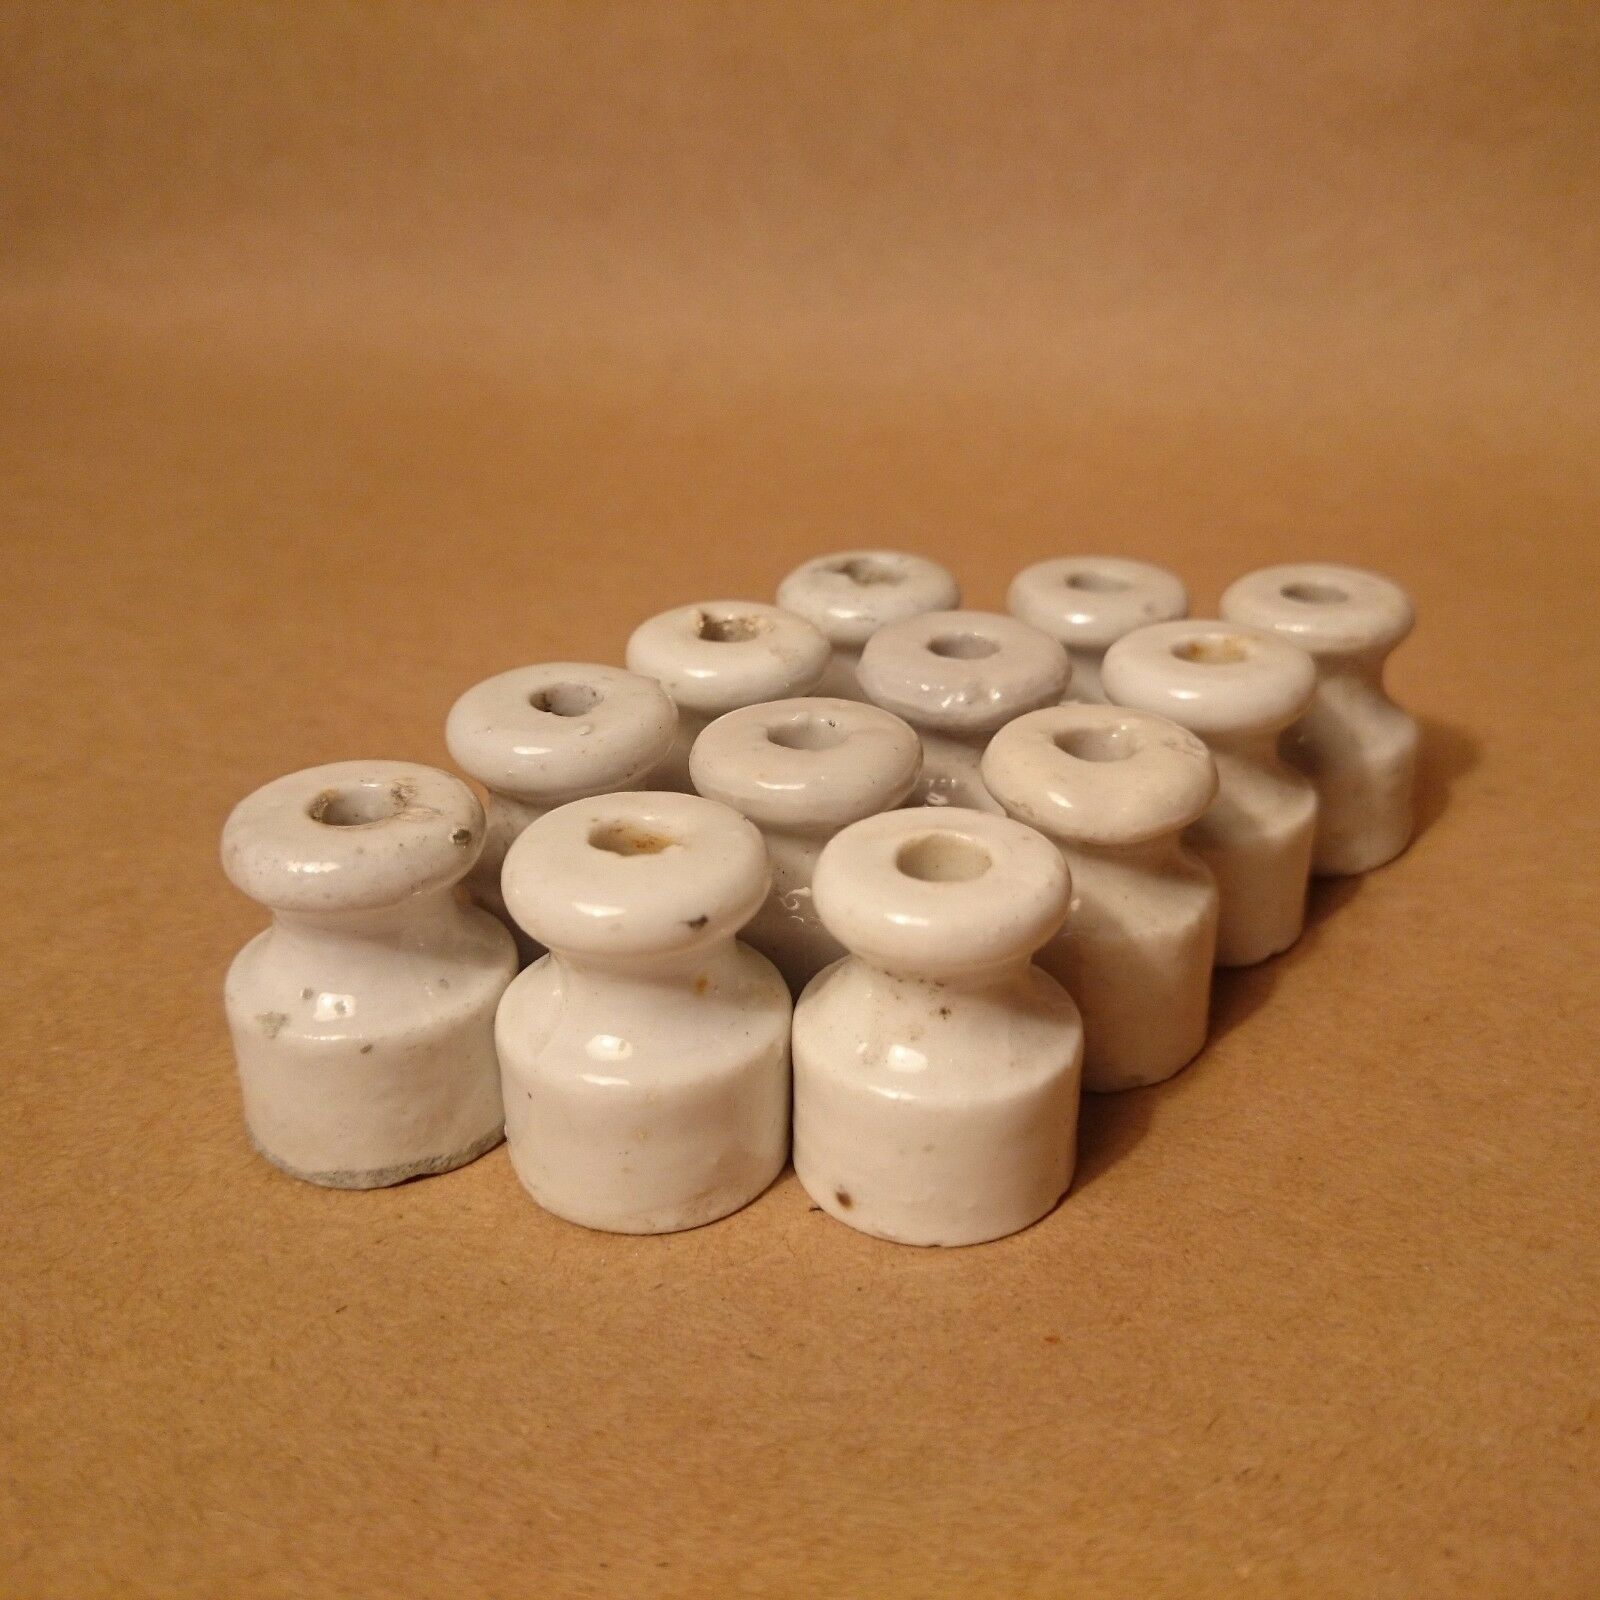 White Porcelain SMALL CERAMIC INSULATORS